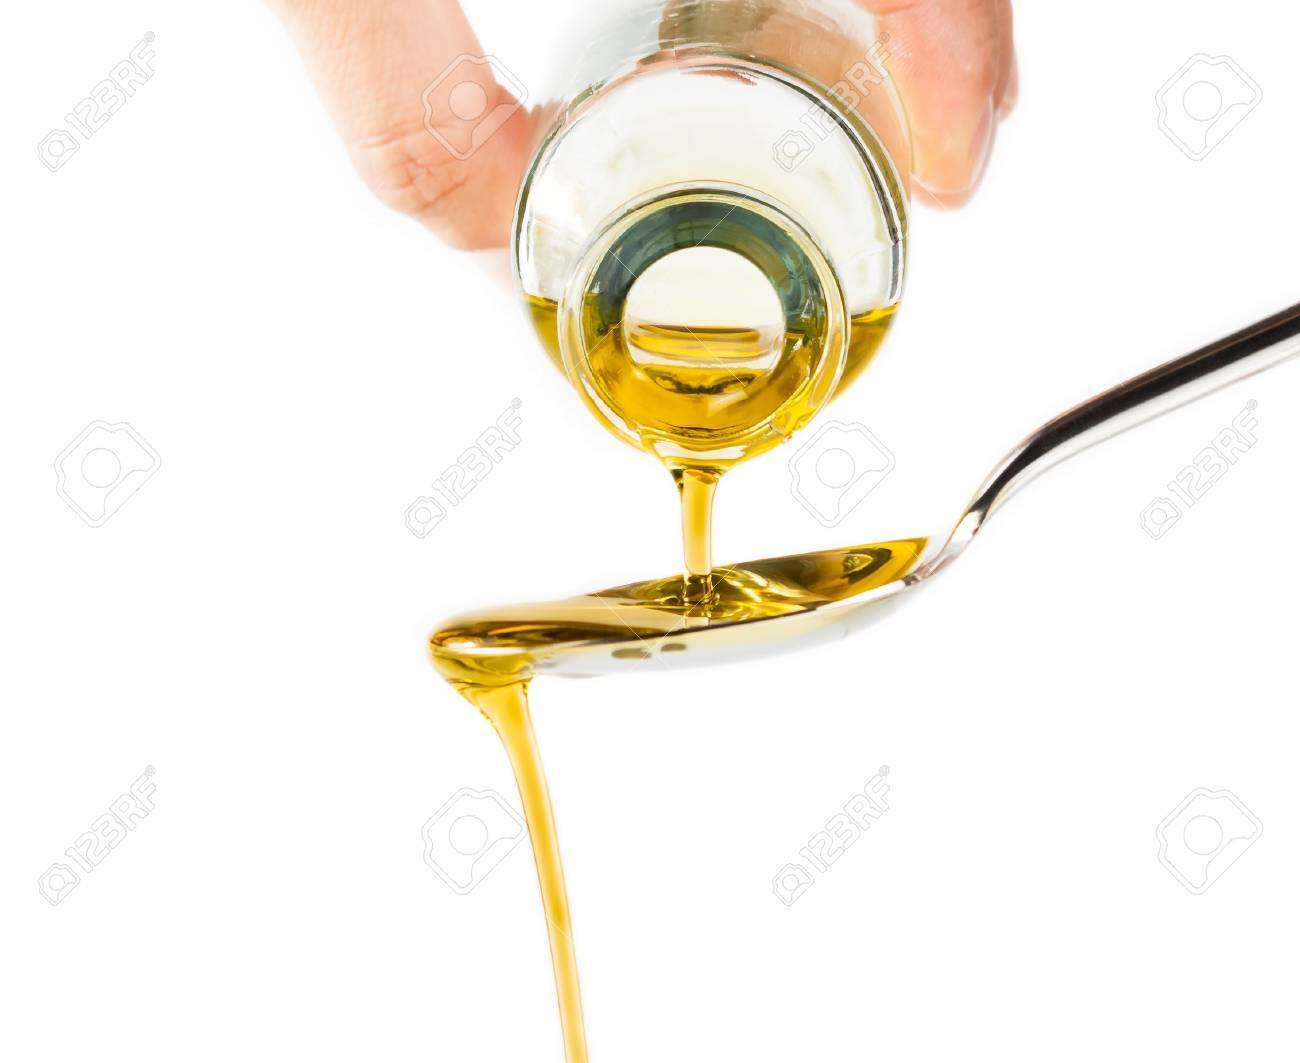 bottle of extra virgin olive oil pouring over a spoon isolated on white background with a space for text - 32853858